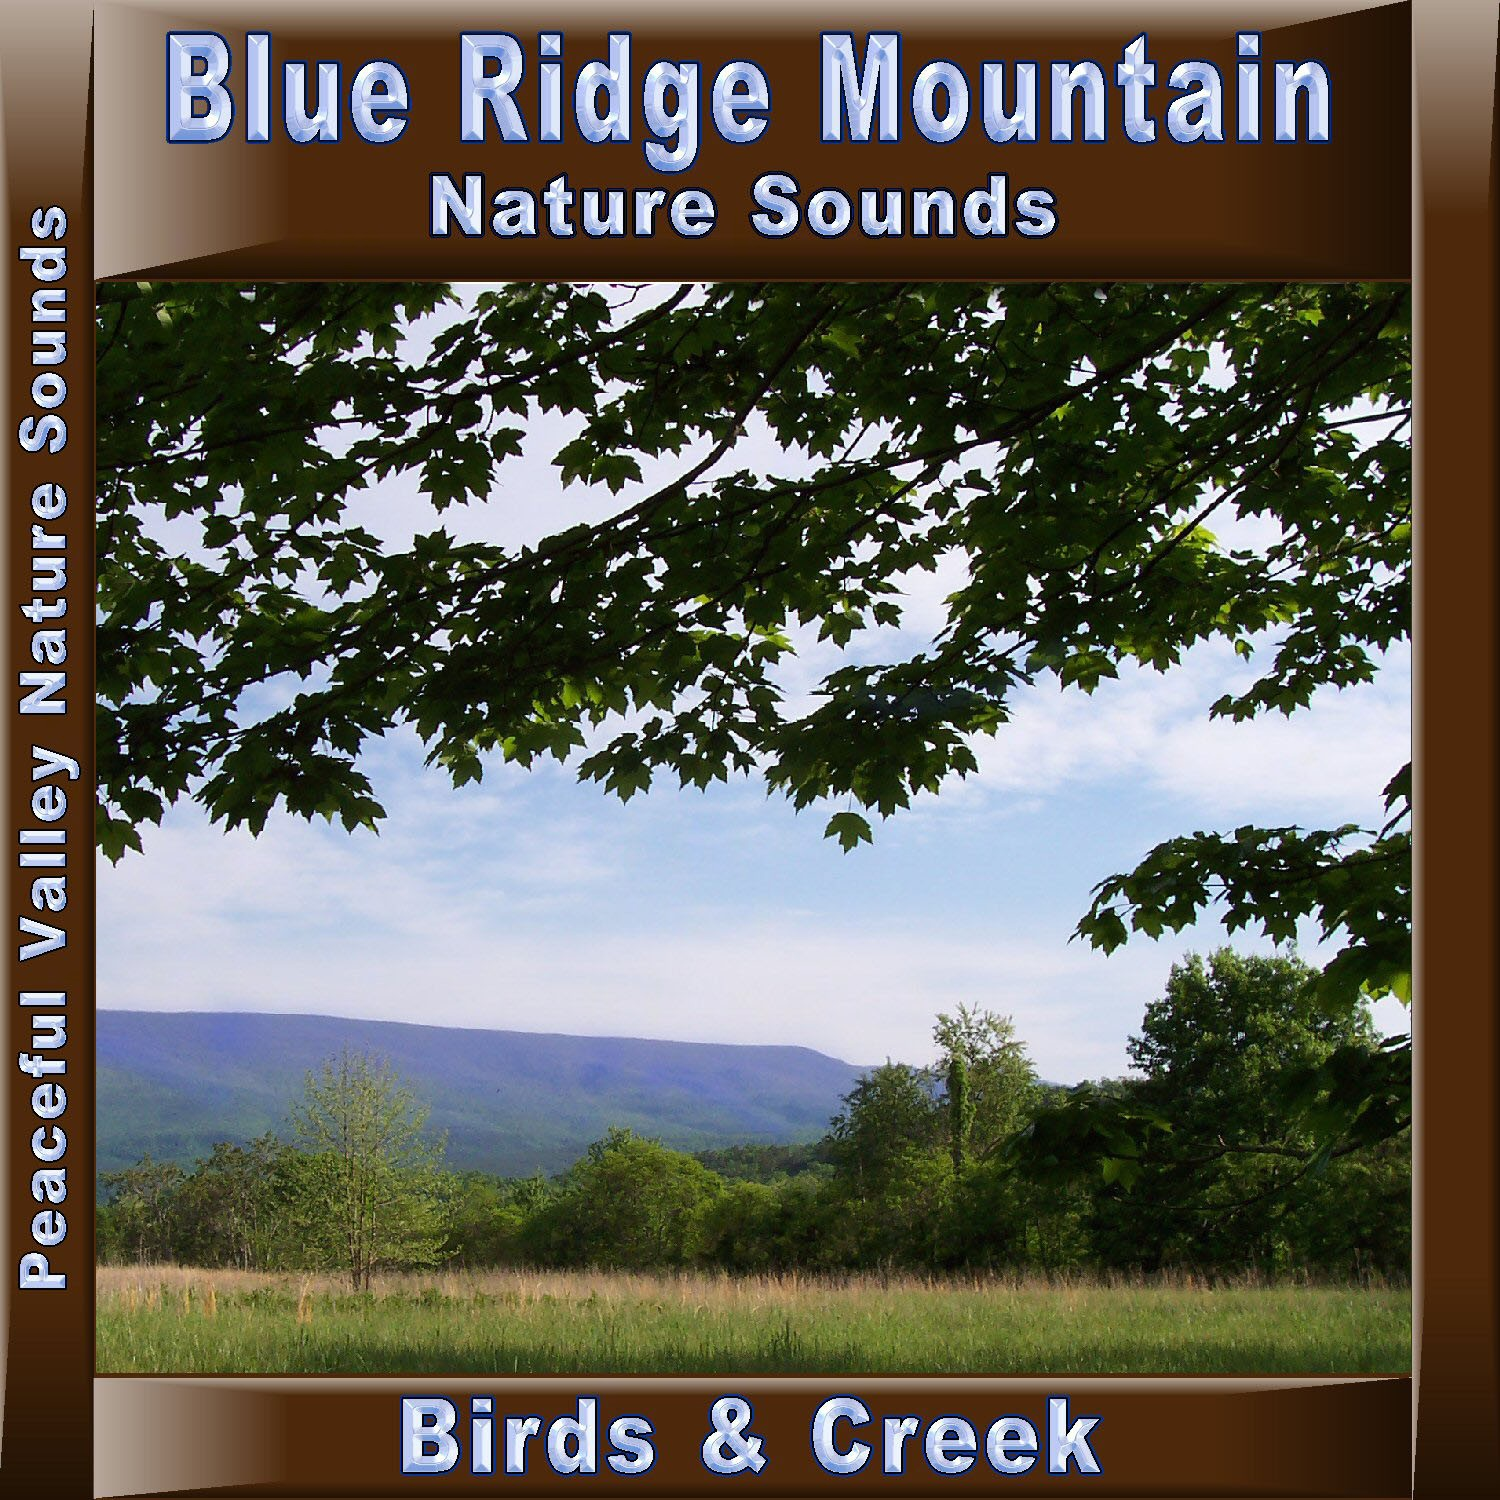 Blue Ridge Mountain Birds & Creek CD